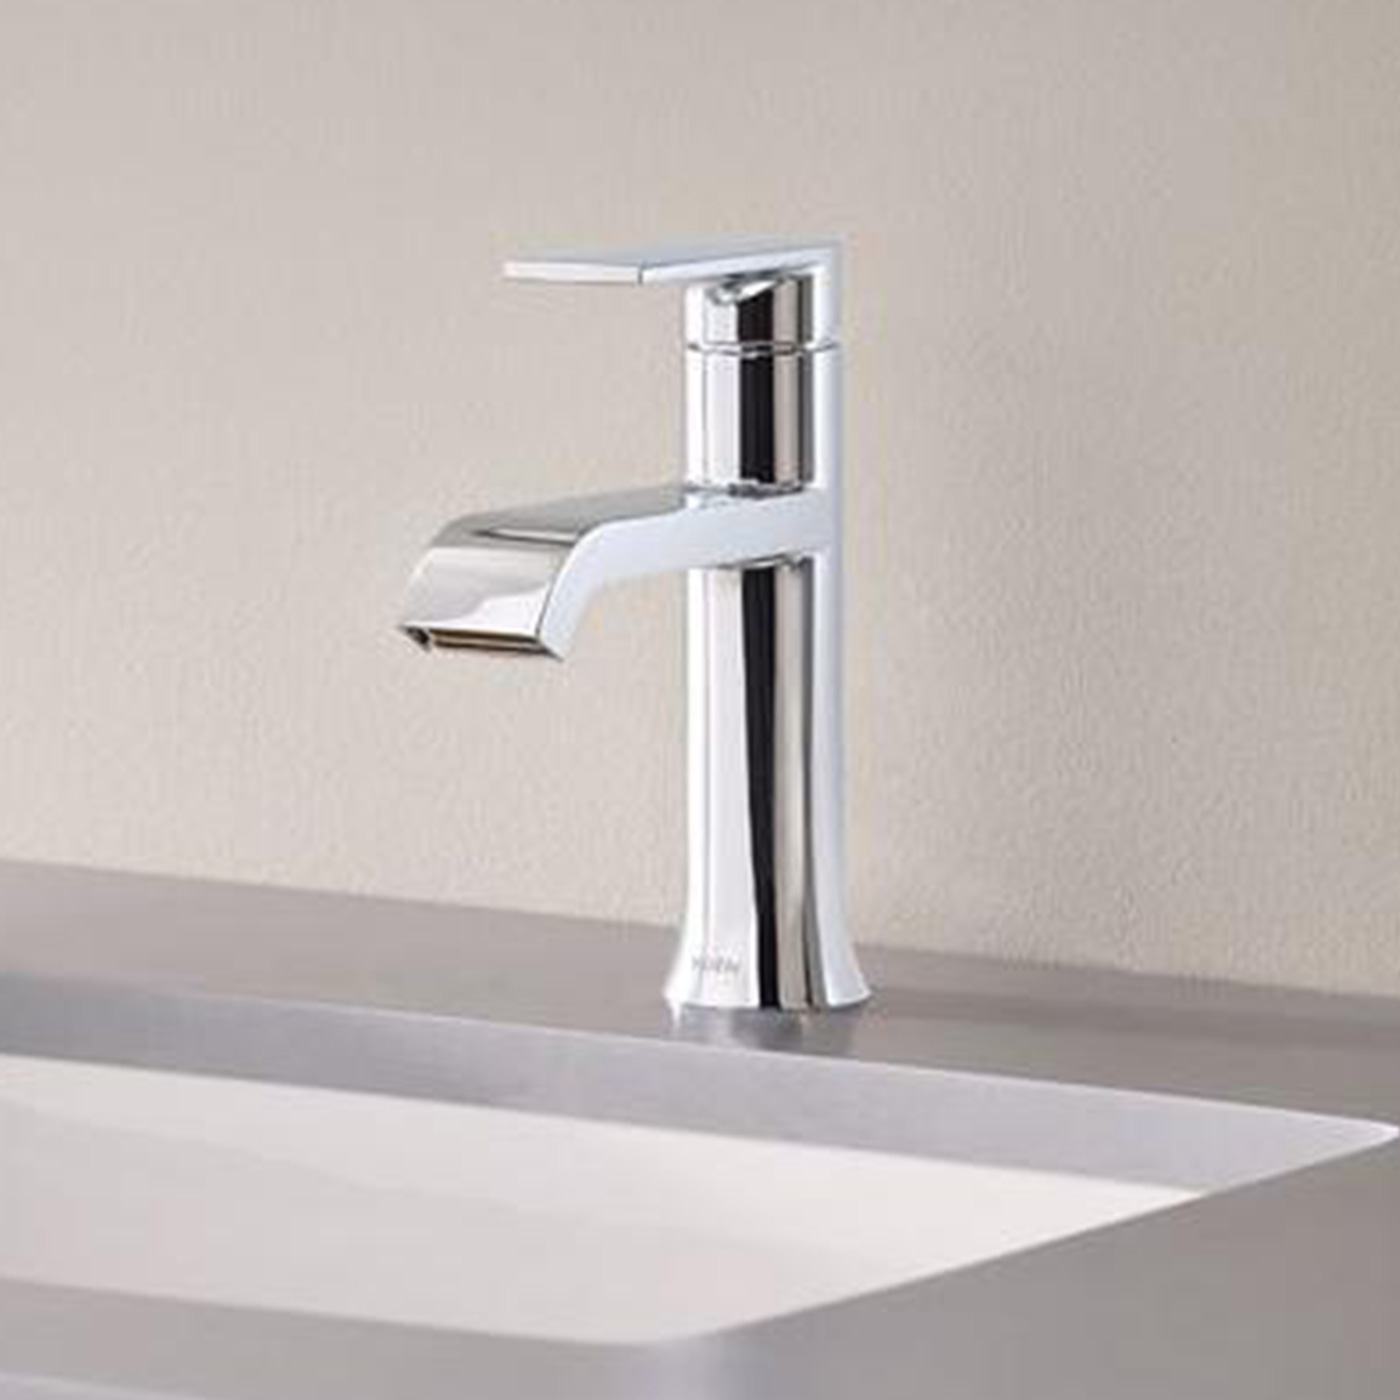 lever waterfall sink chrome kitchen stone steelsink elite design faucet vessel finish single sinks faucets product bathroom stainless info